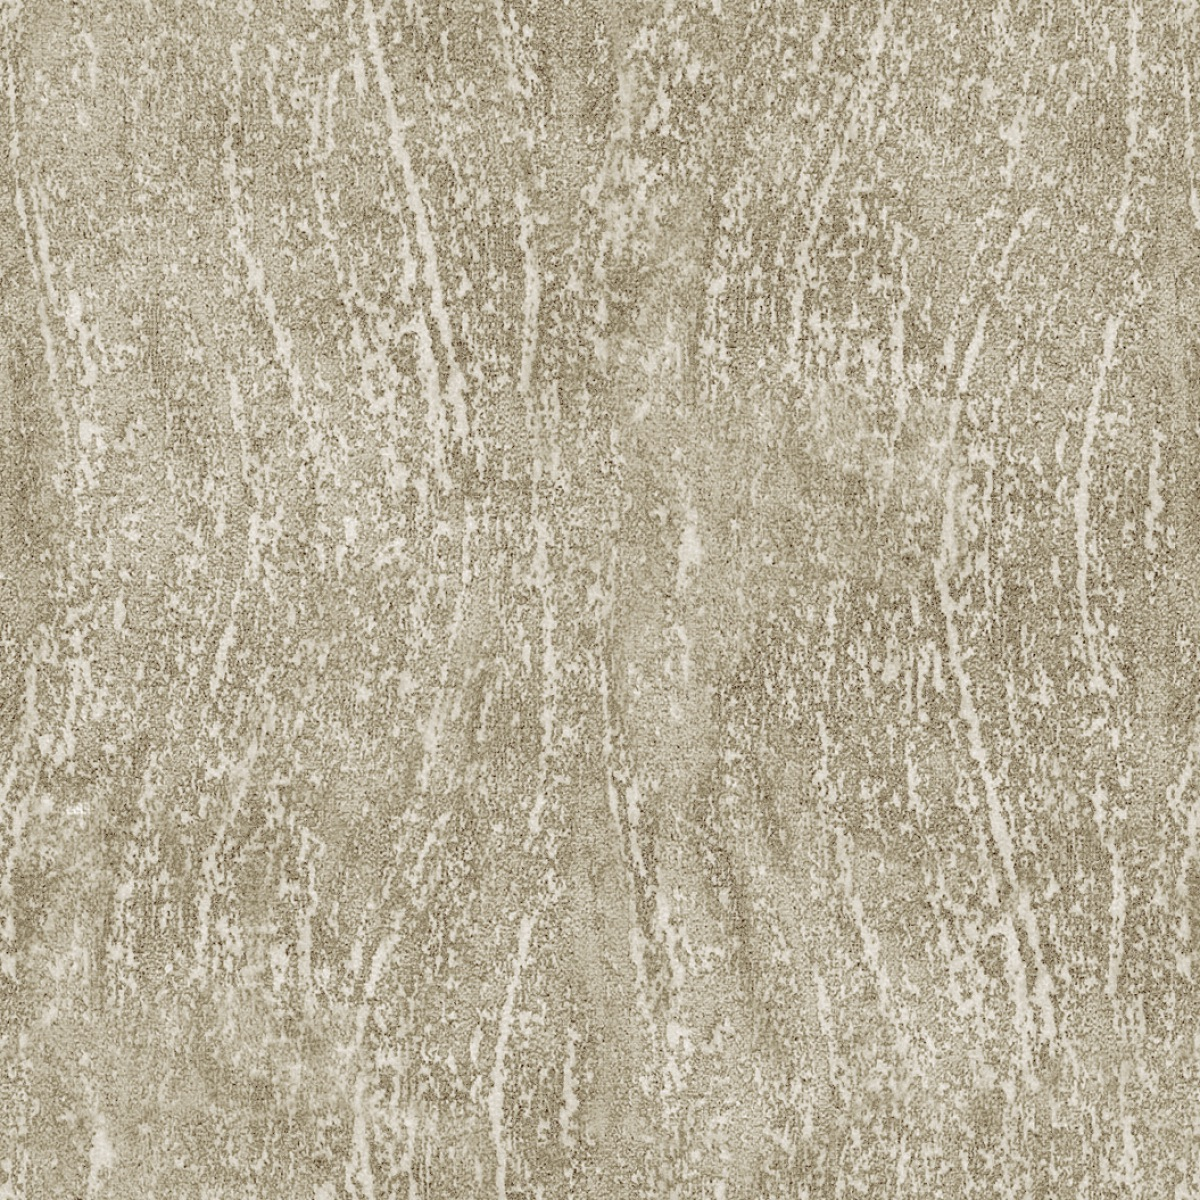 Montecelio – Travertine